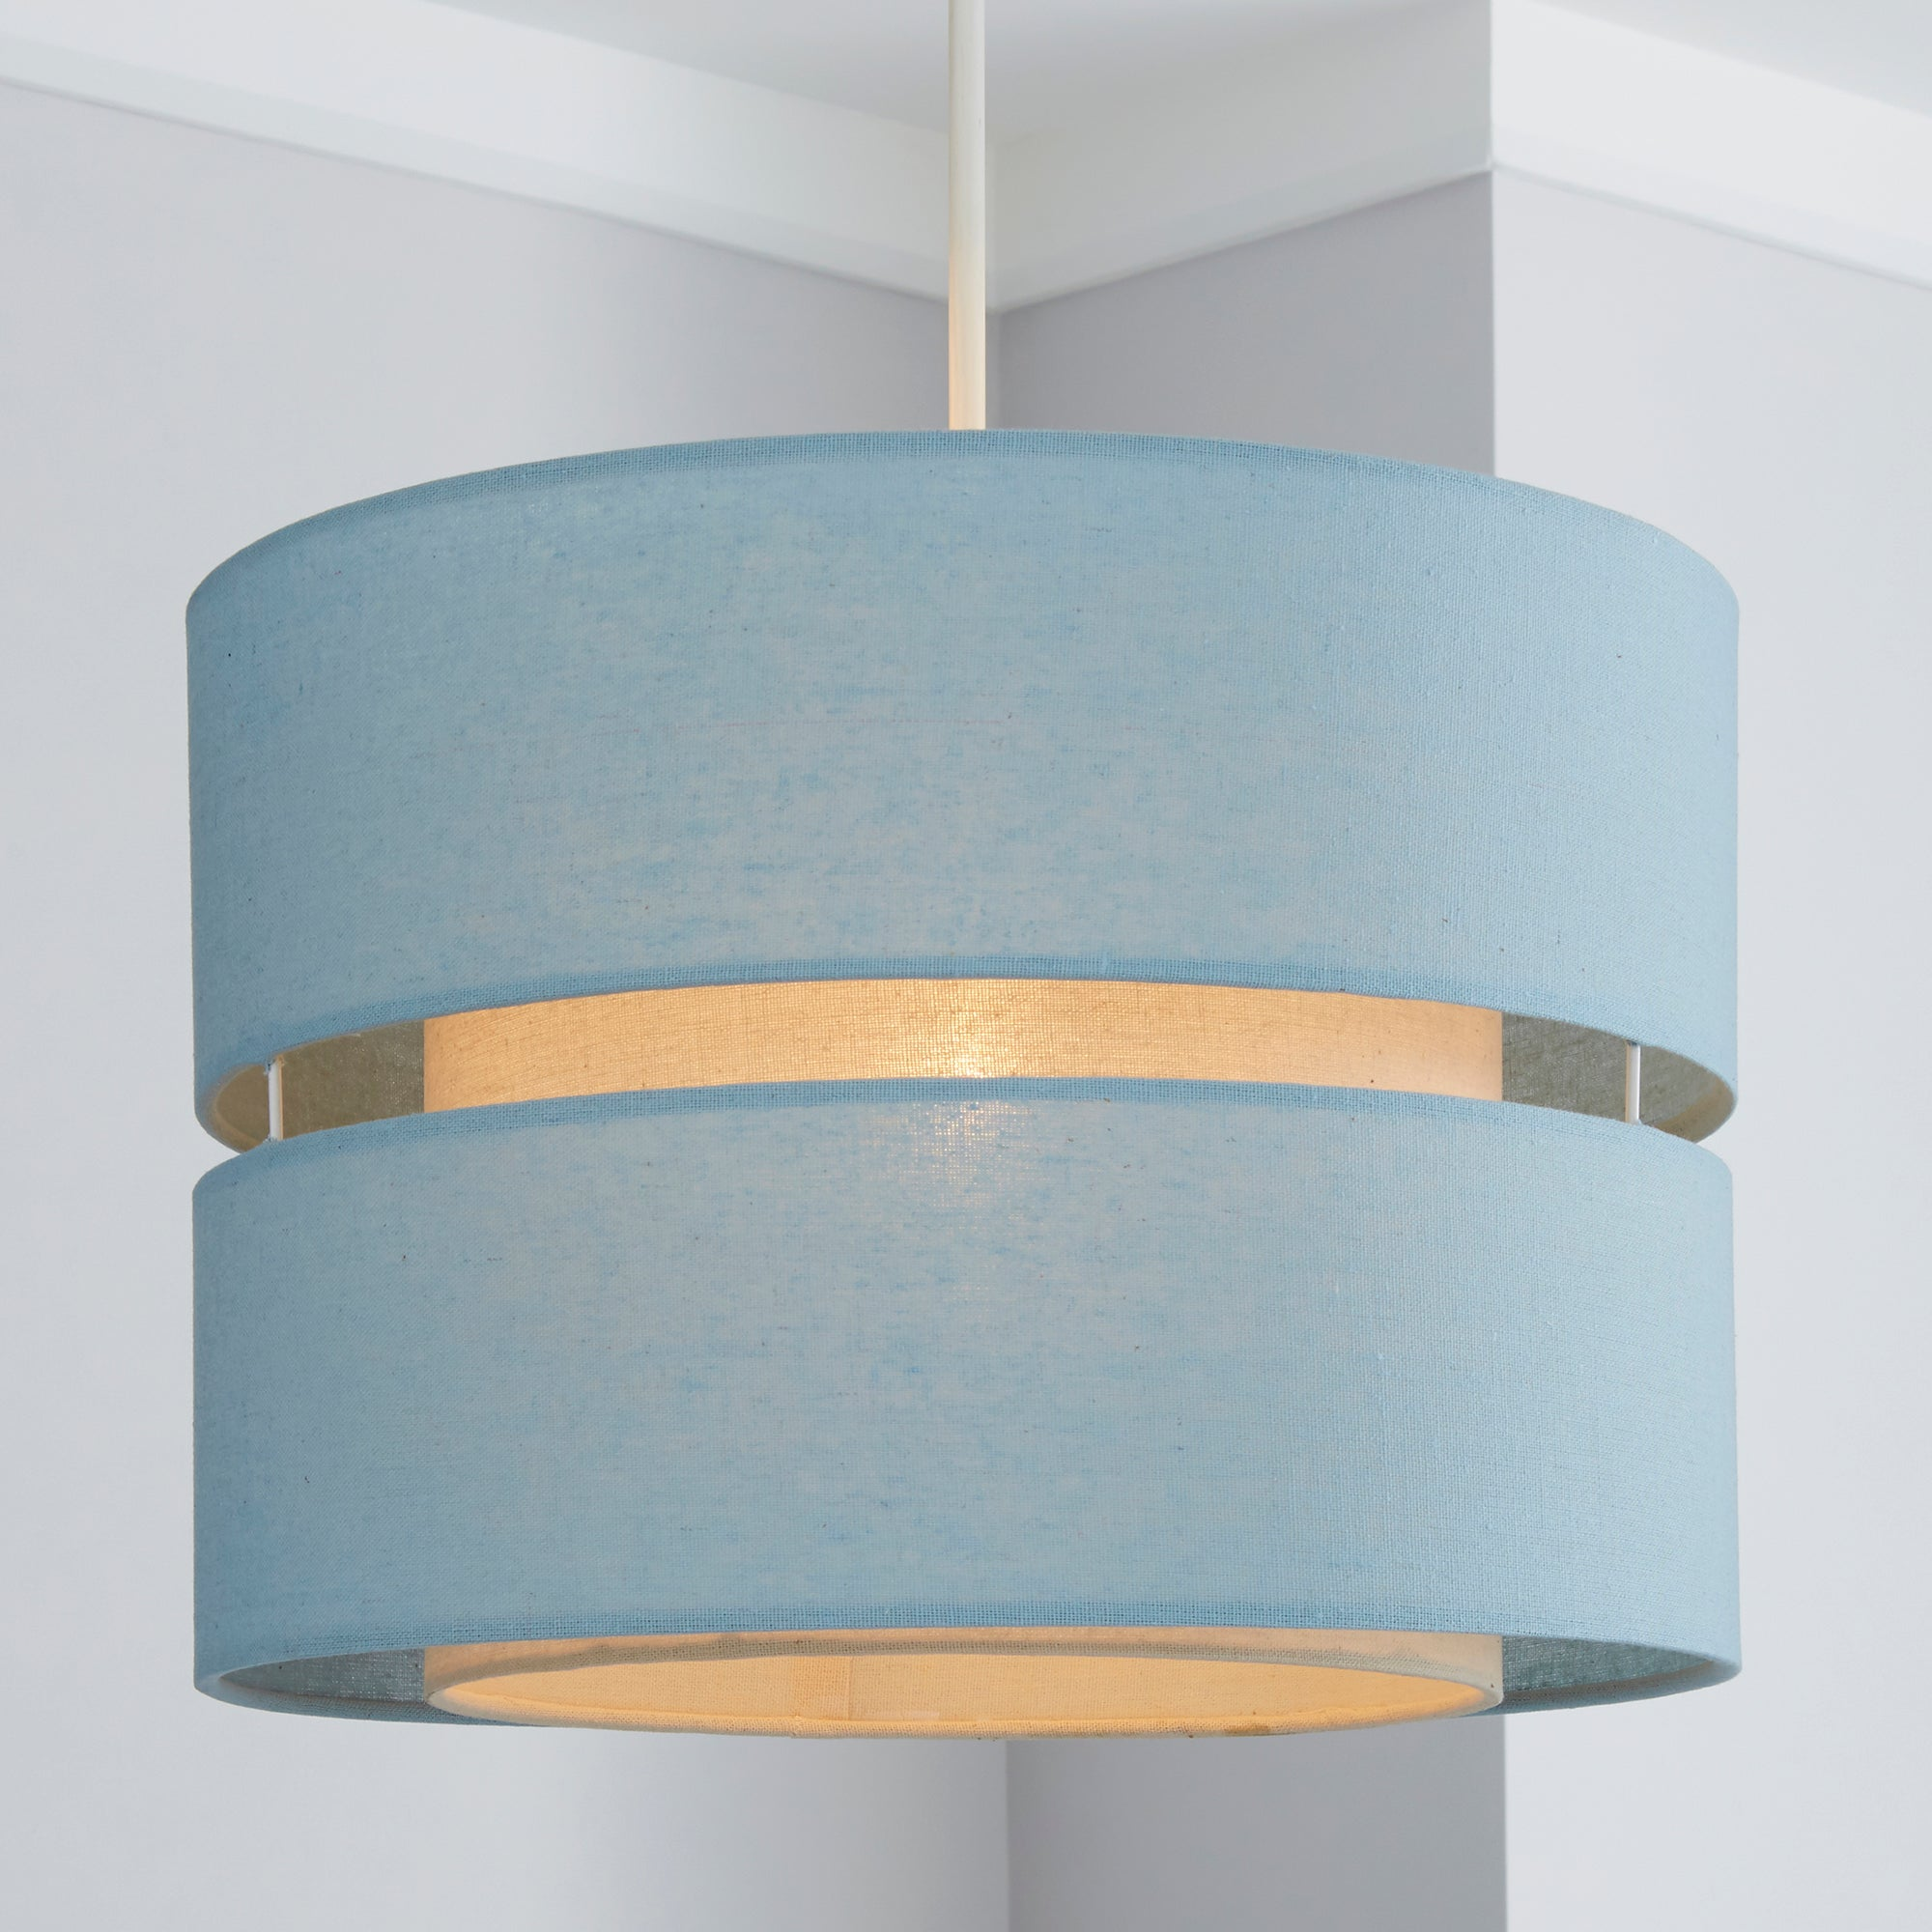 buy cheap blue light shade compare lighting prices for best uk deals